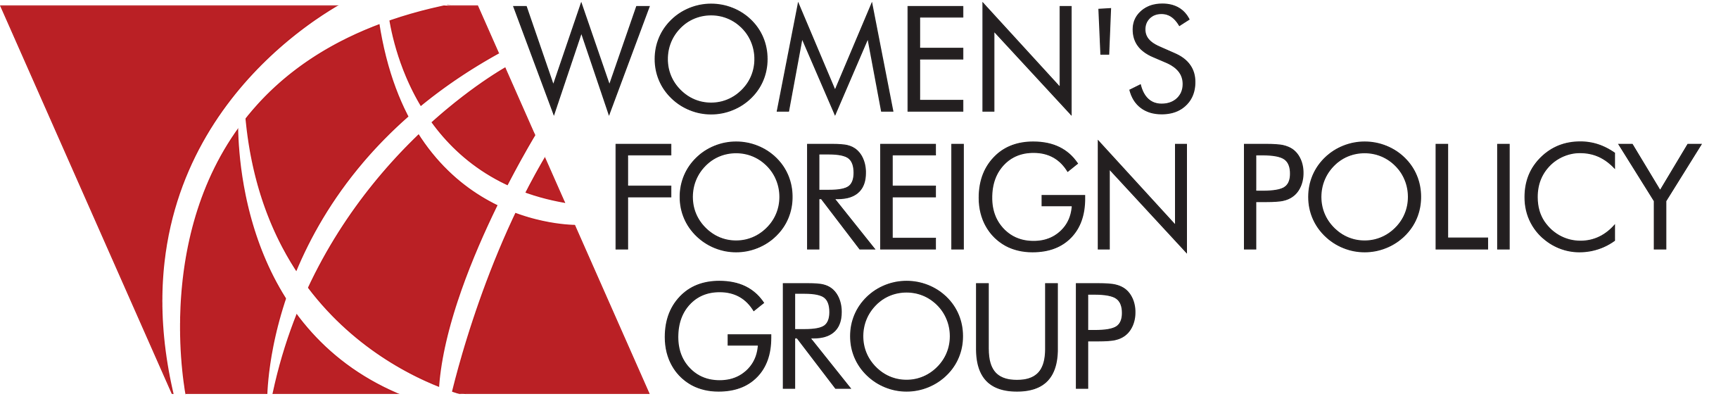 Women's Foreign Policy Group logo